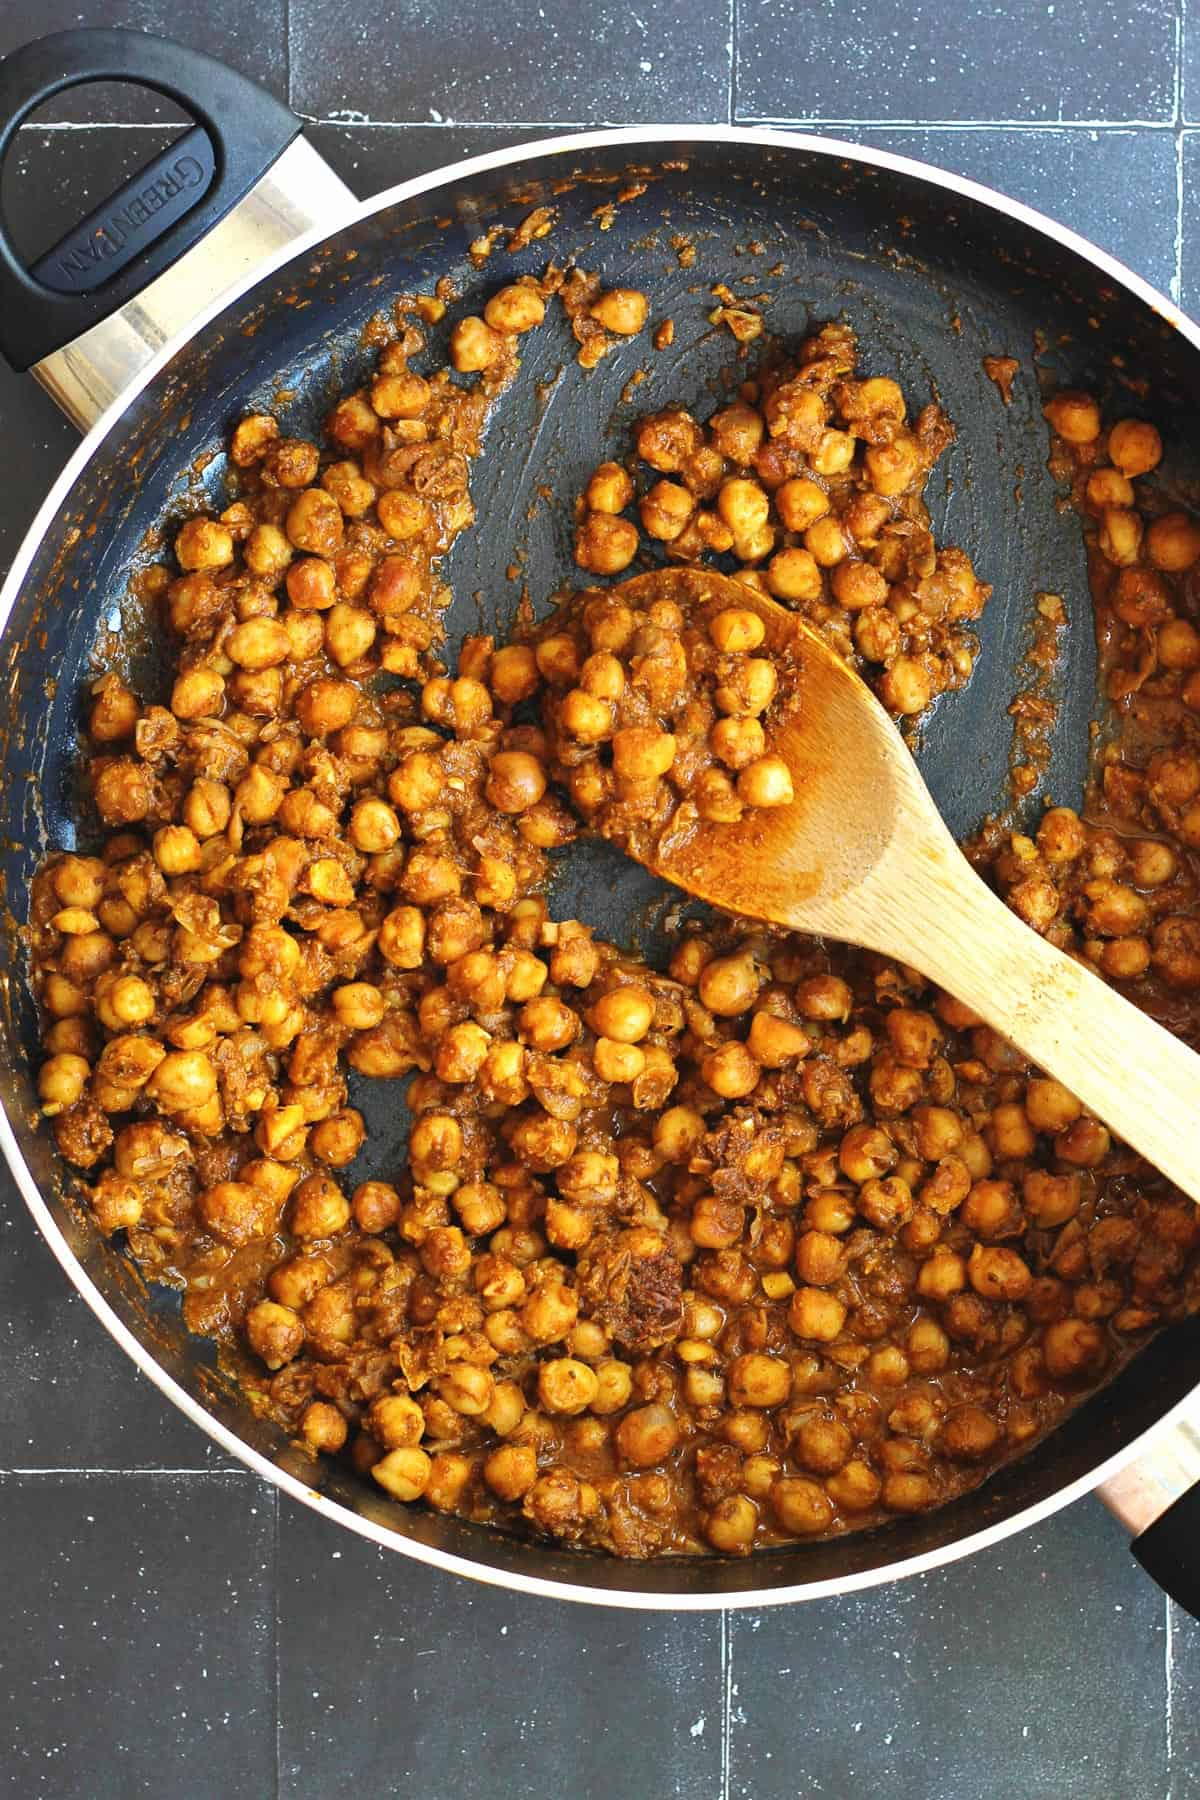 Cooking chickpeas in a pan for chickpea gyros